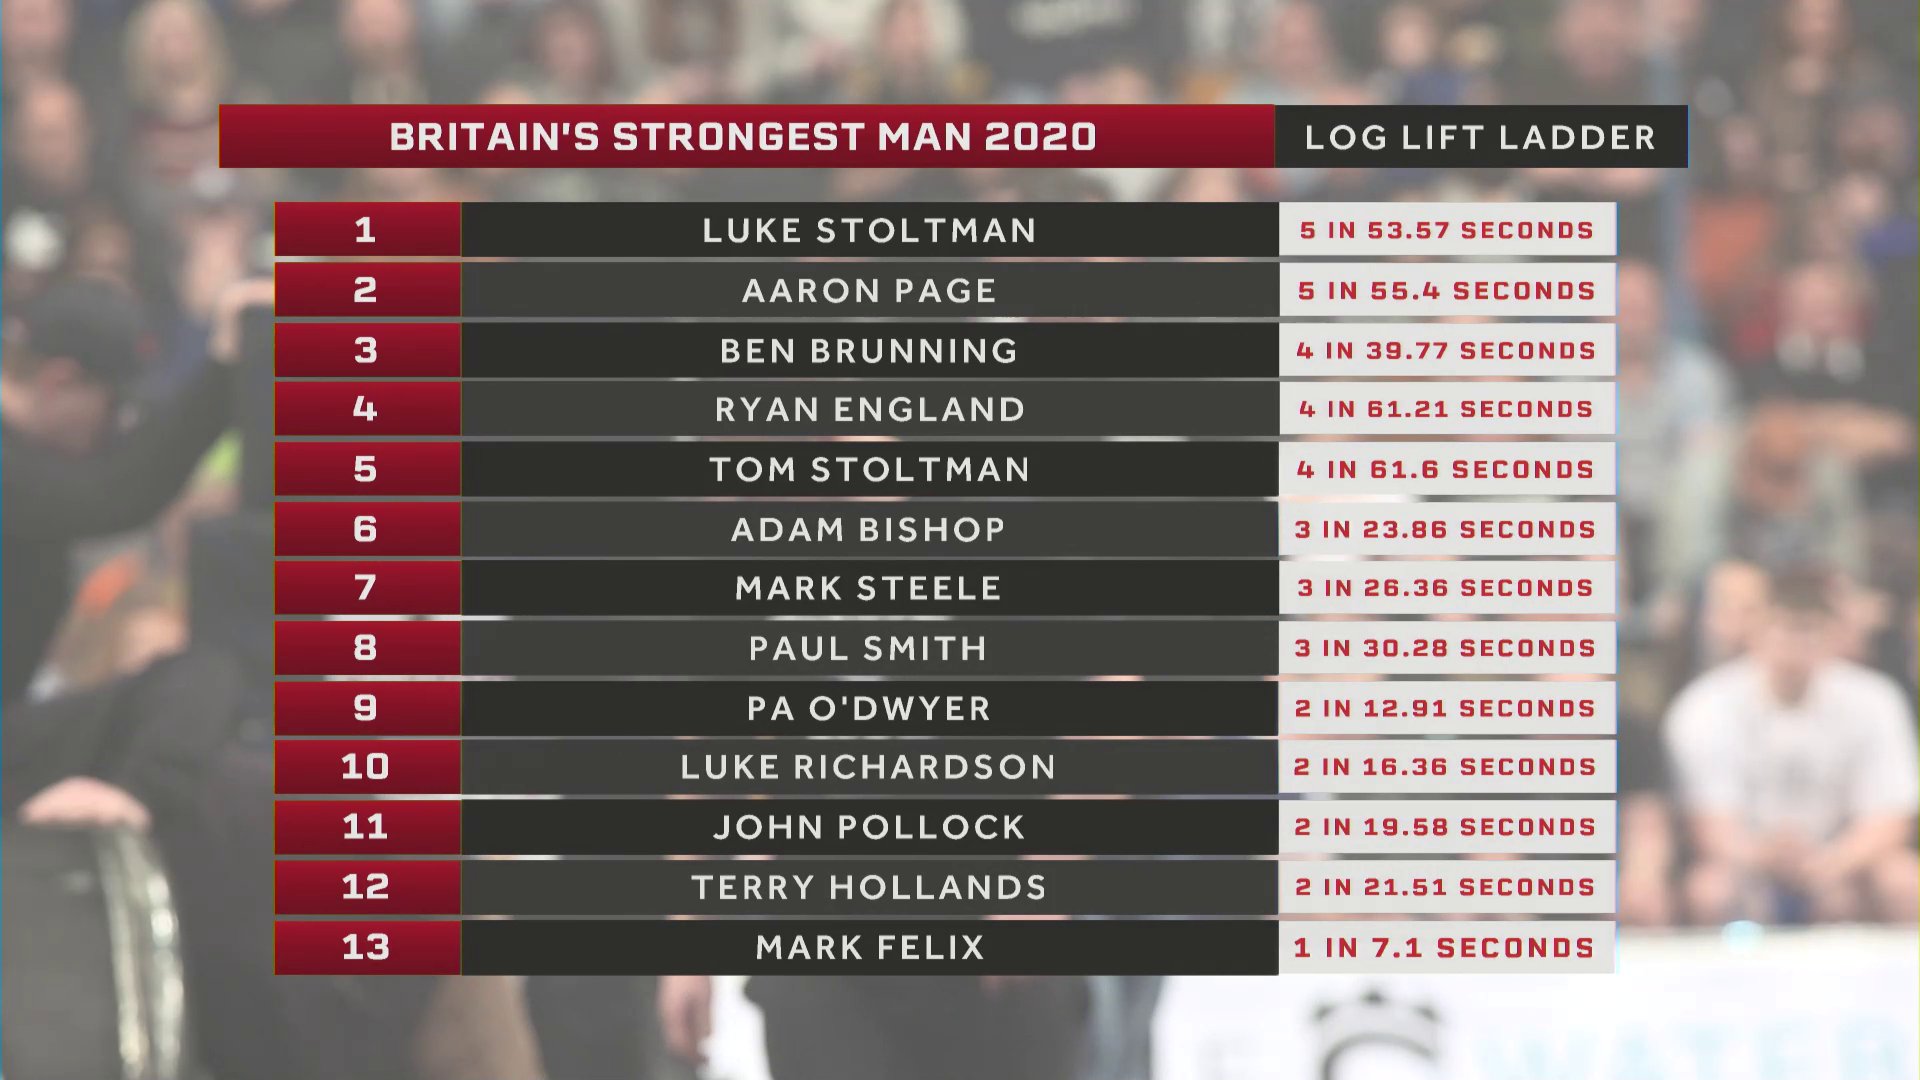 Britain's Strongest Man results log lift